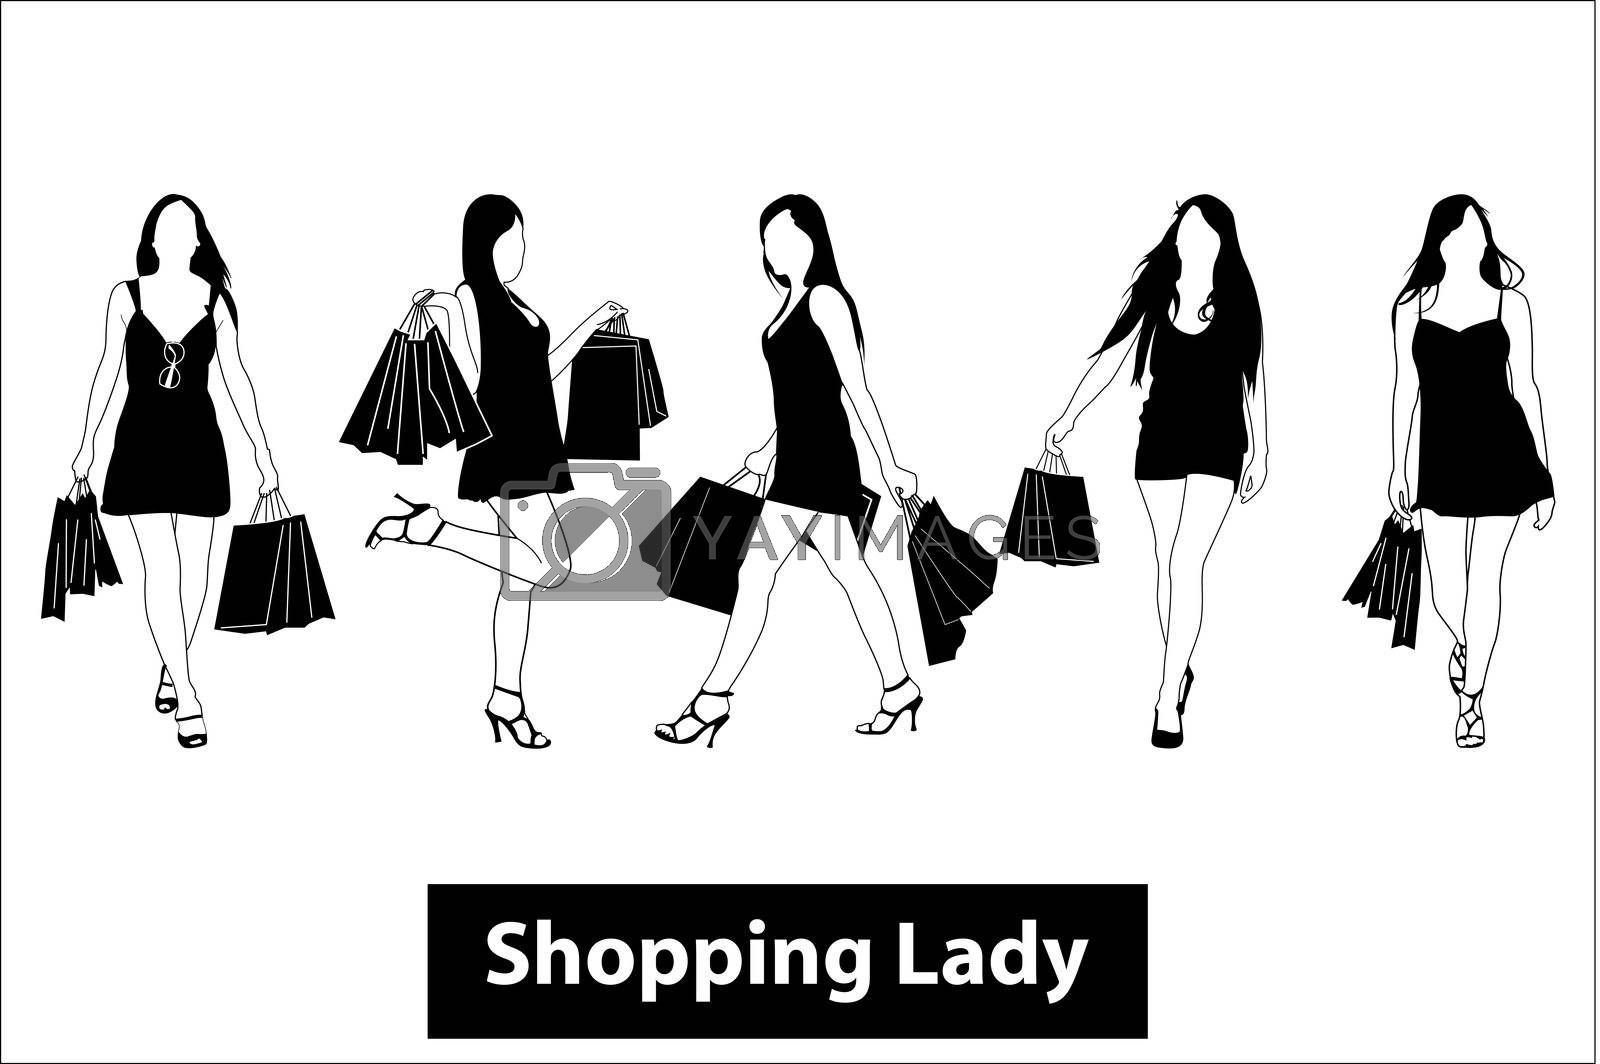 shopping lady by get4net